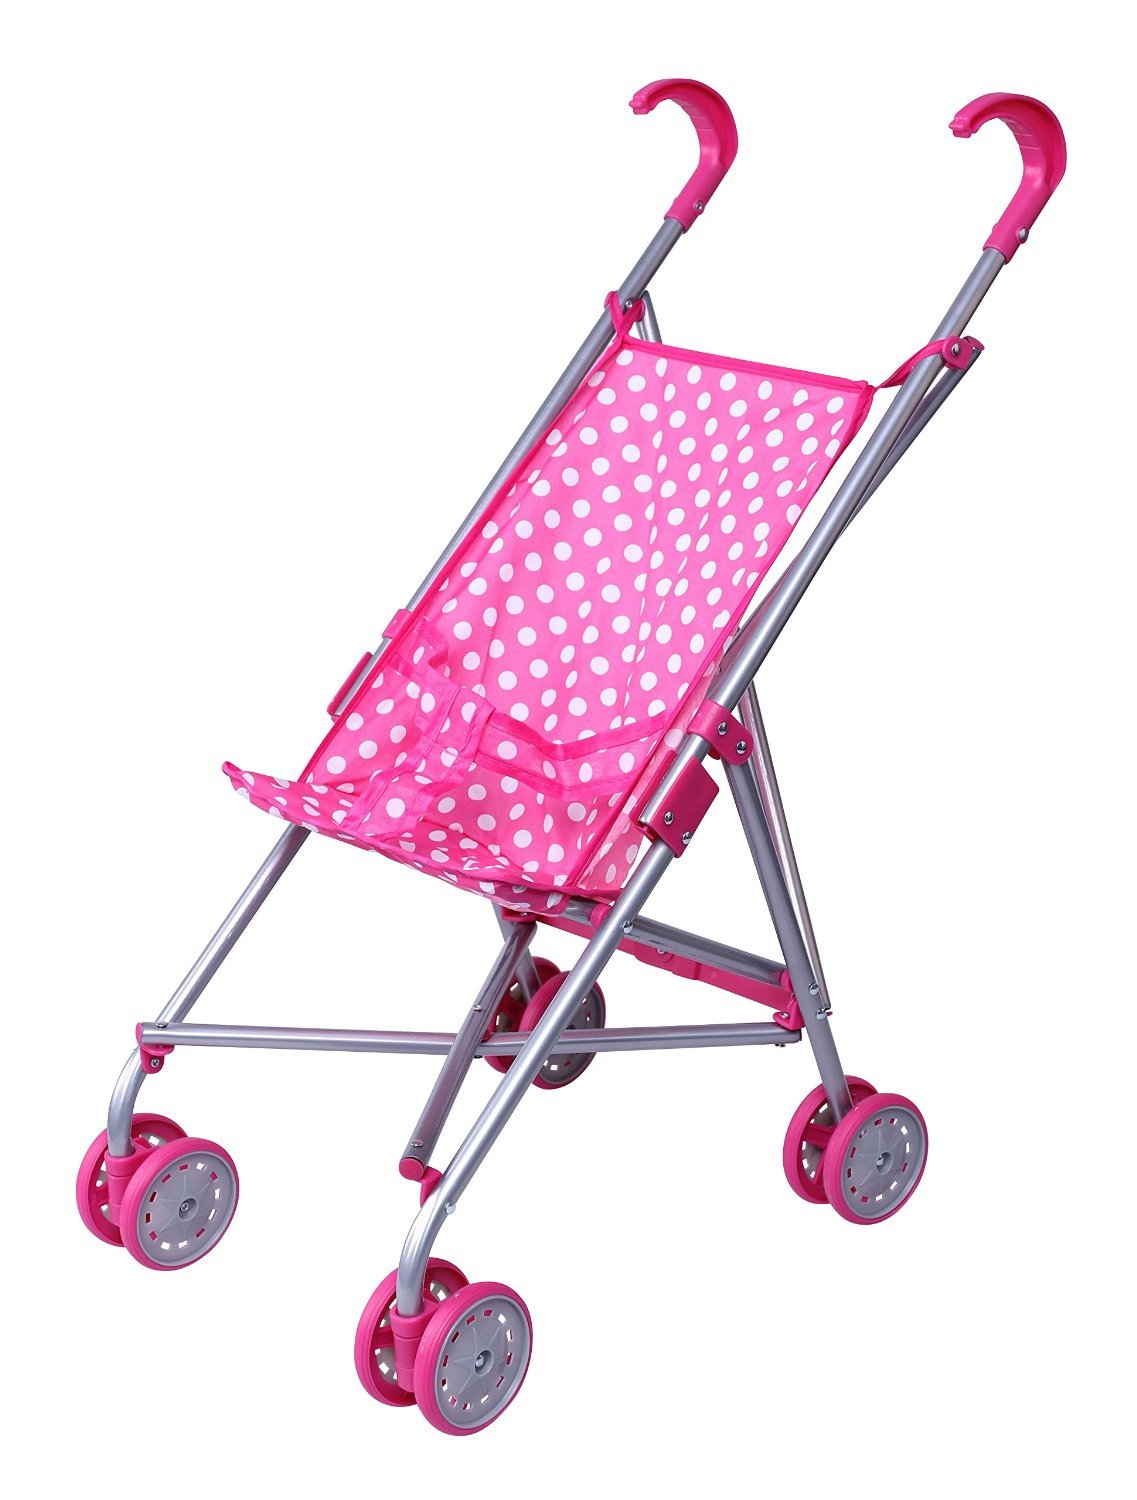 Precious Toys Pink & White Polka Dots Foldable Doll Stroller with swivel wheels by Precious toys